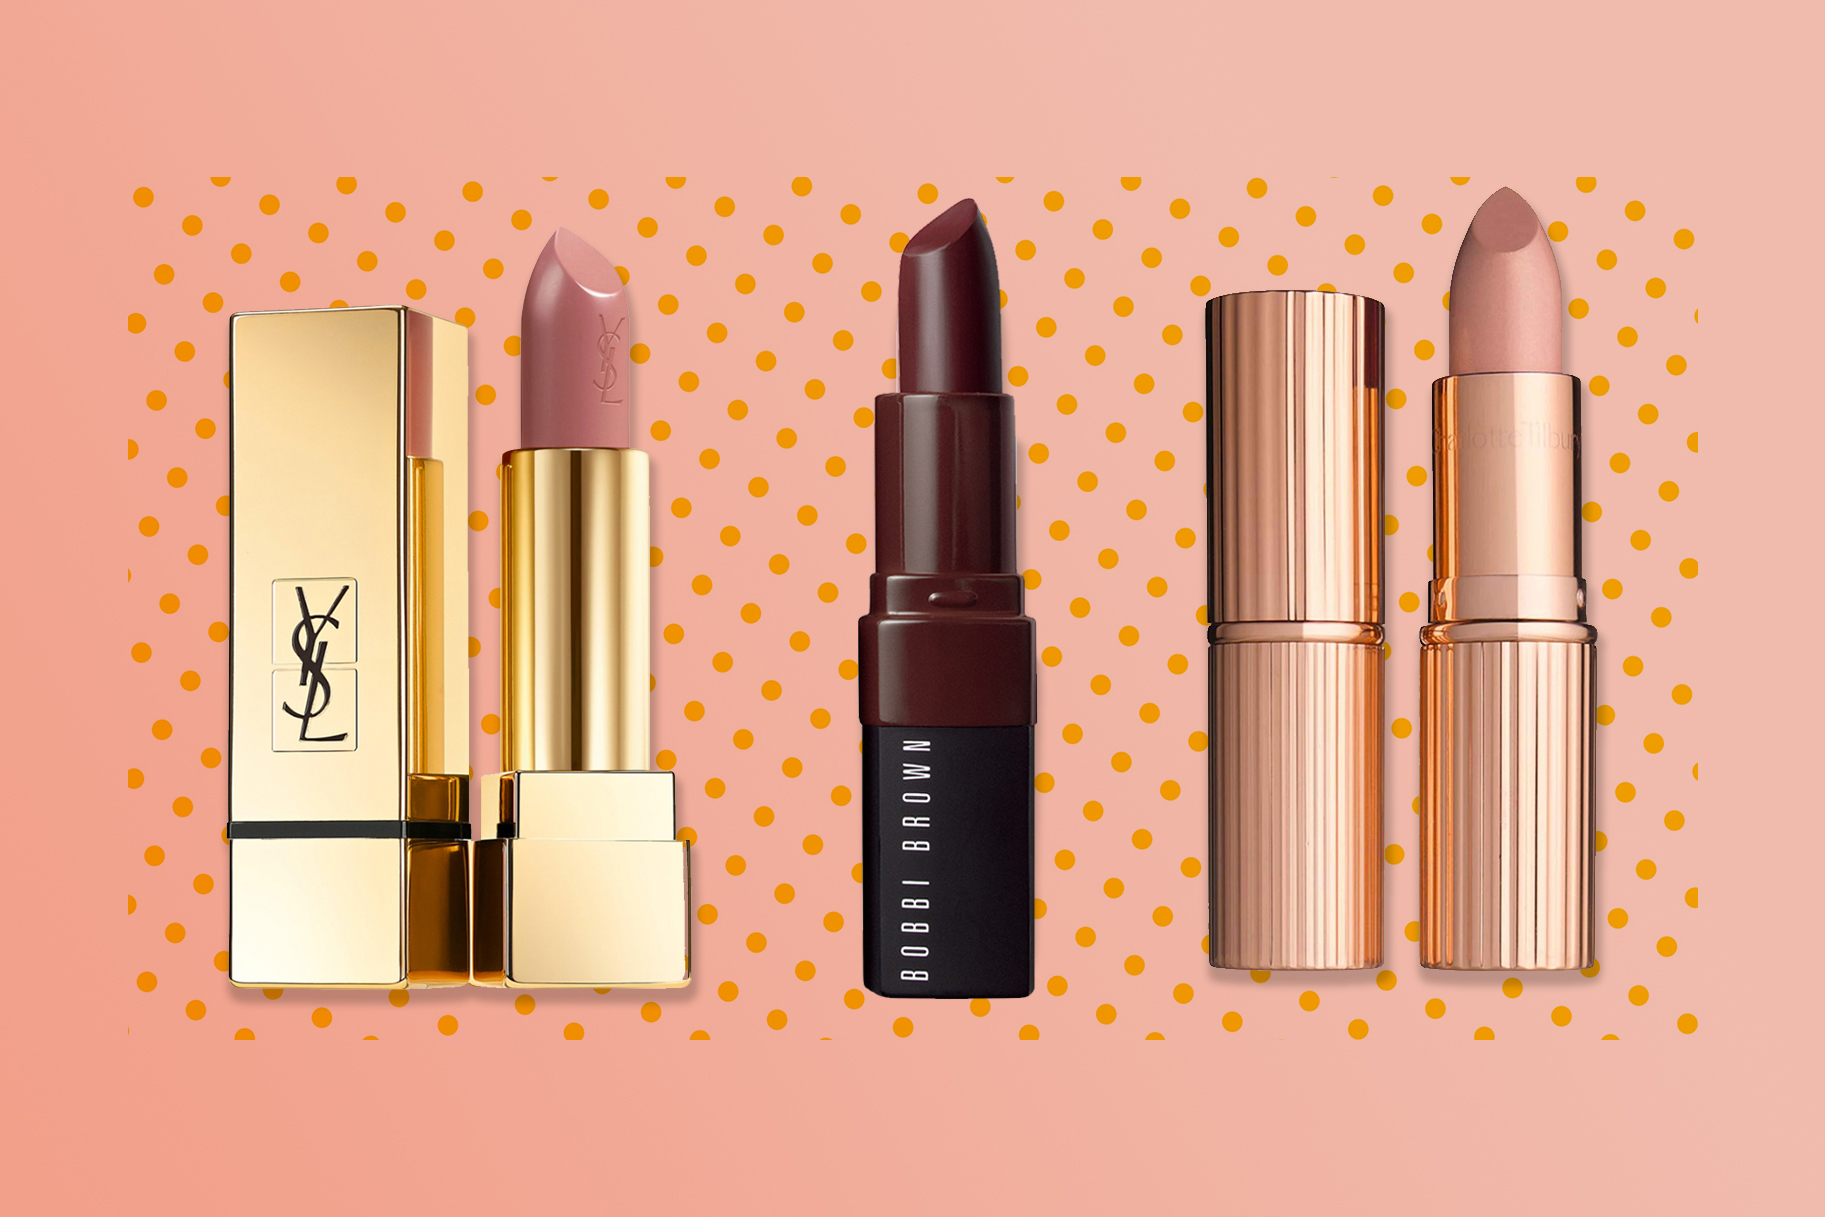 Nude Look Best Nude Lipstick For Every Skin Tone: Dark To Light Nudes | Style & Living